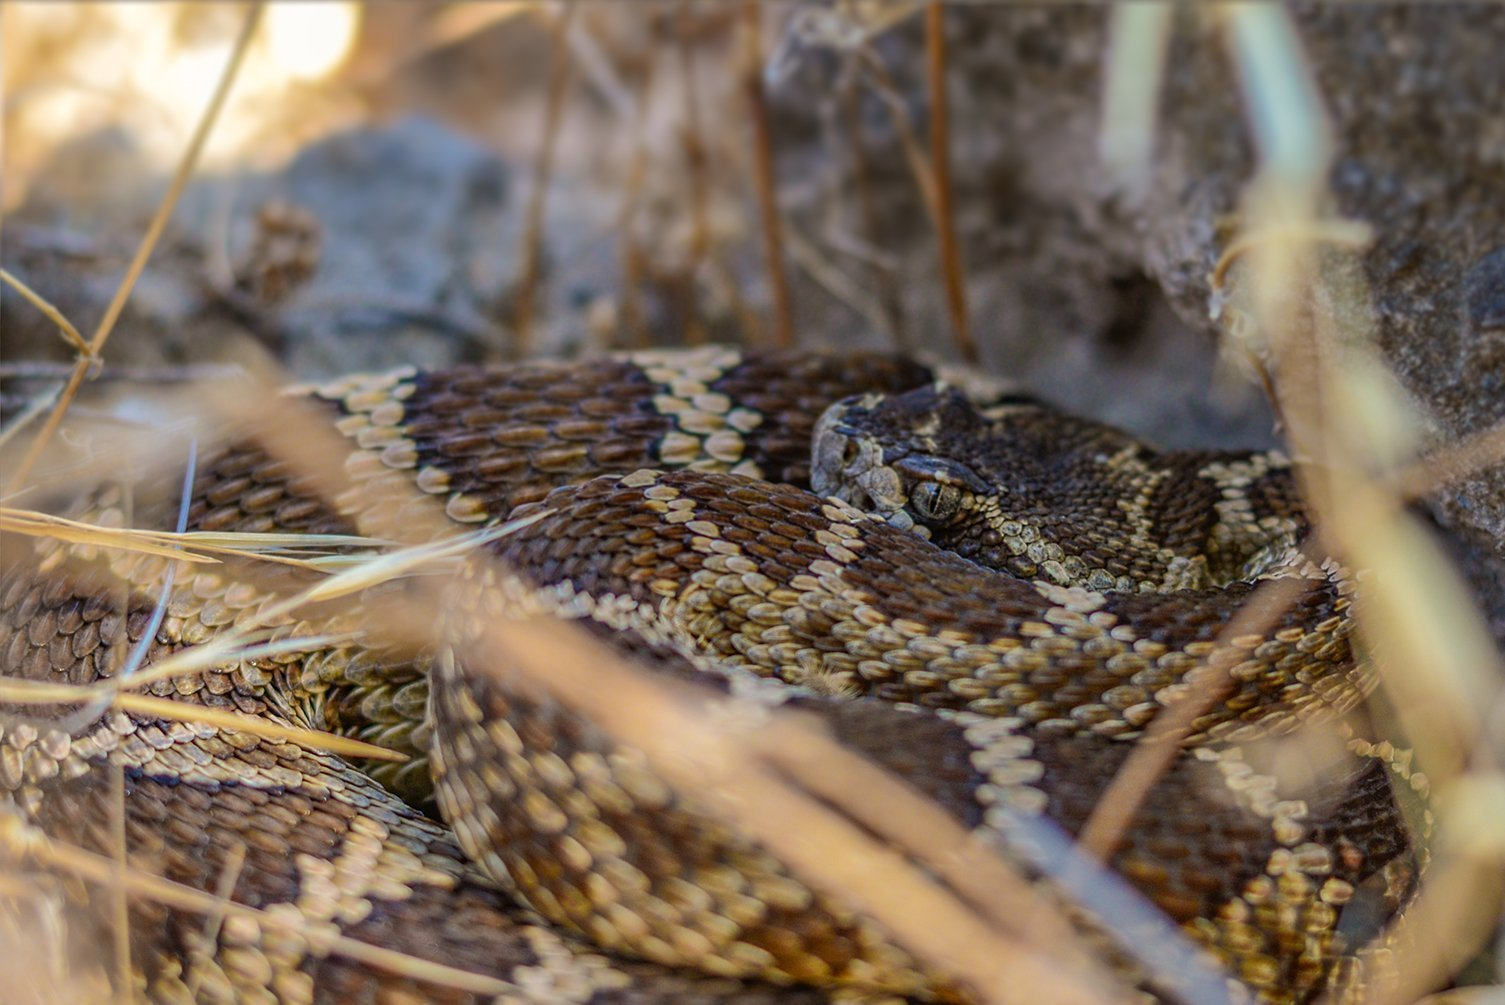 Where Do Rattlesnakes Go During Heatwaves?